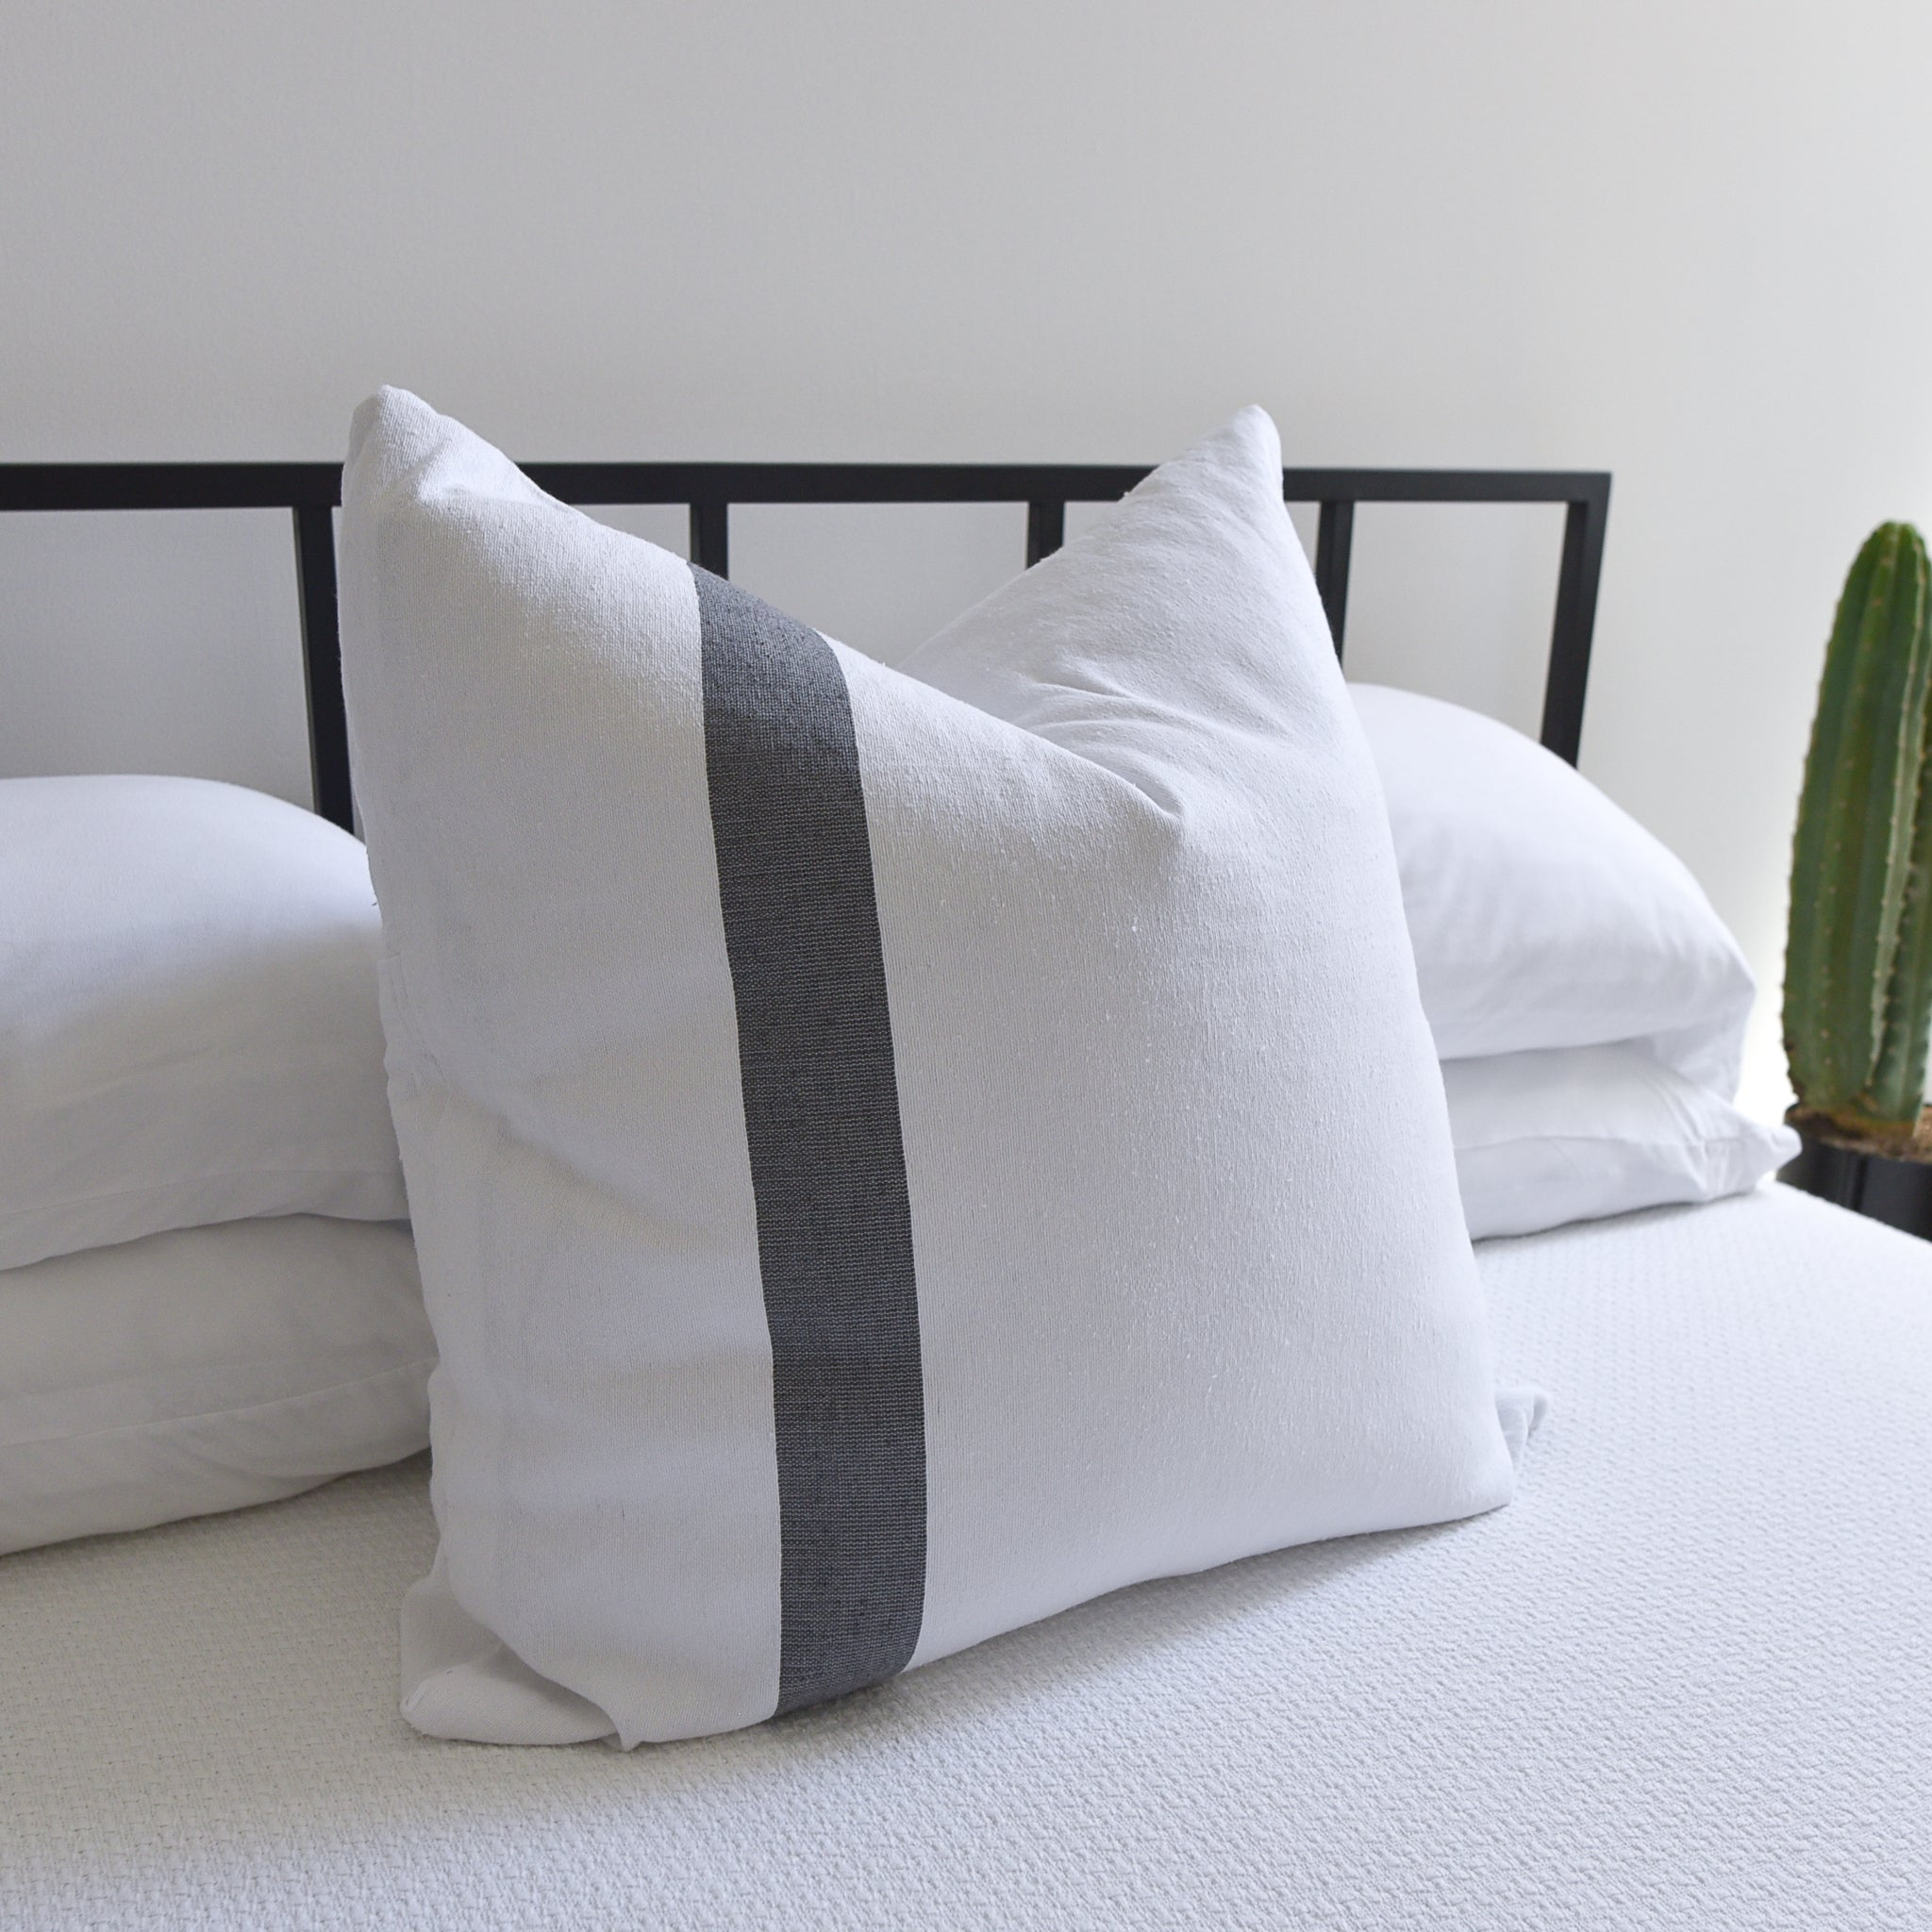 A white cotton euro sham on a bed with white bedding.